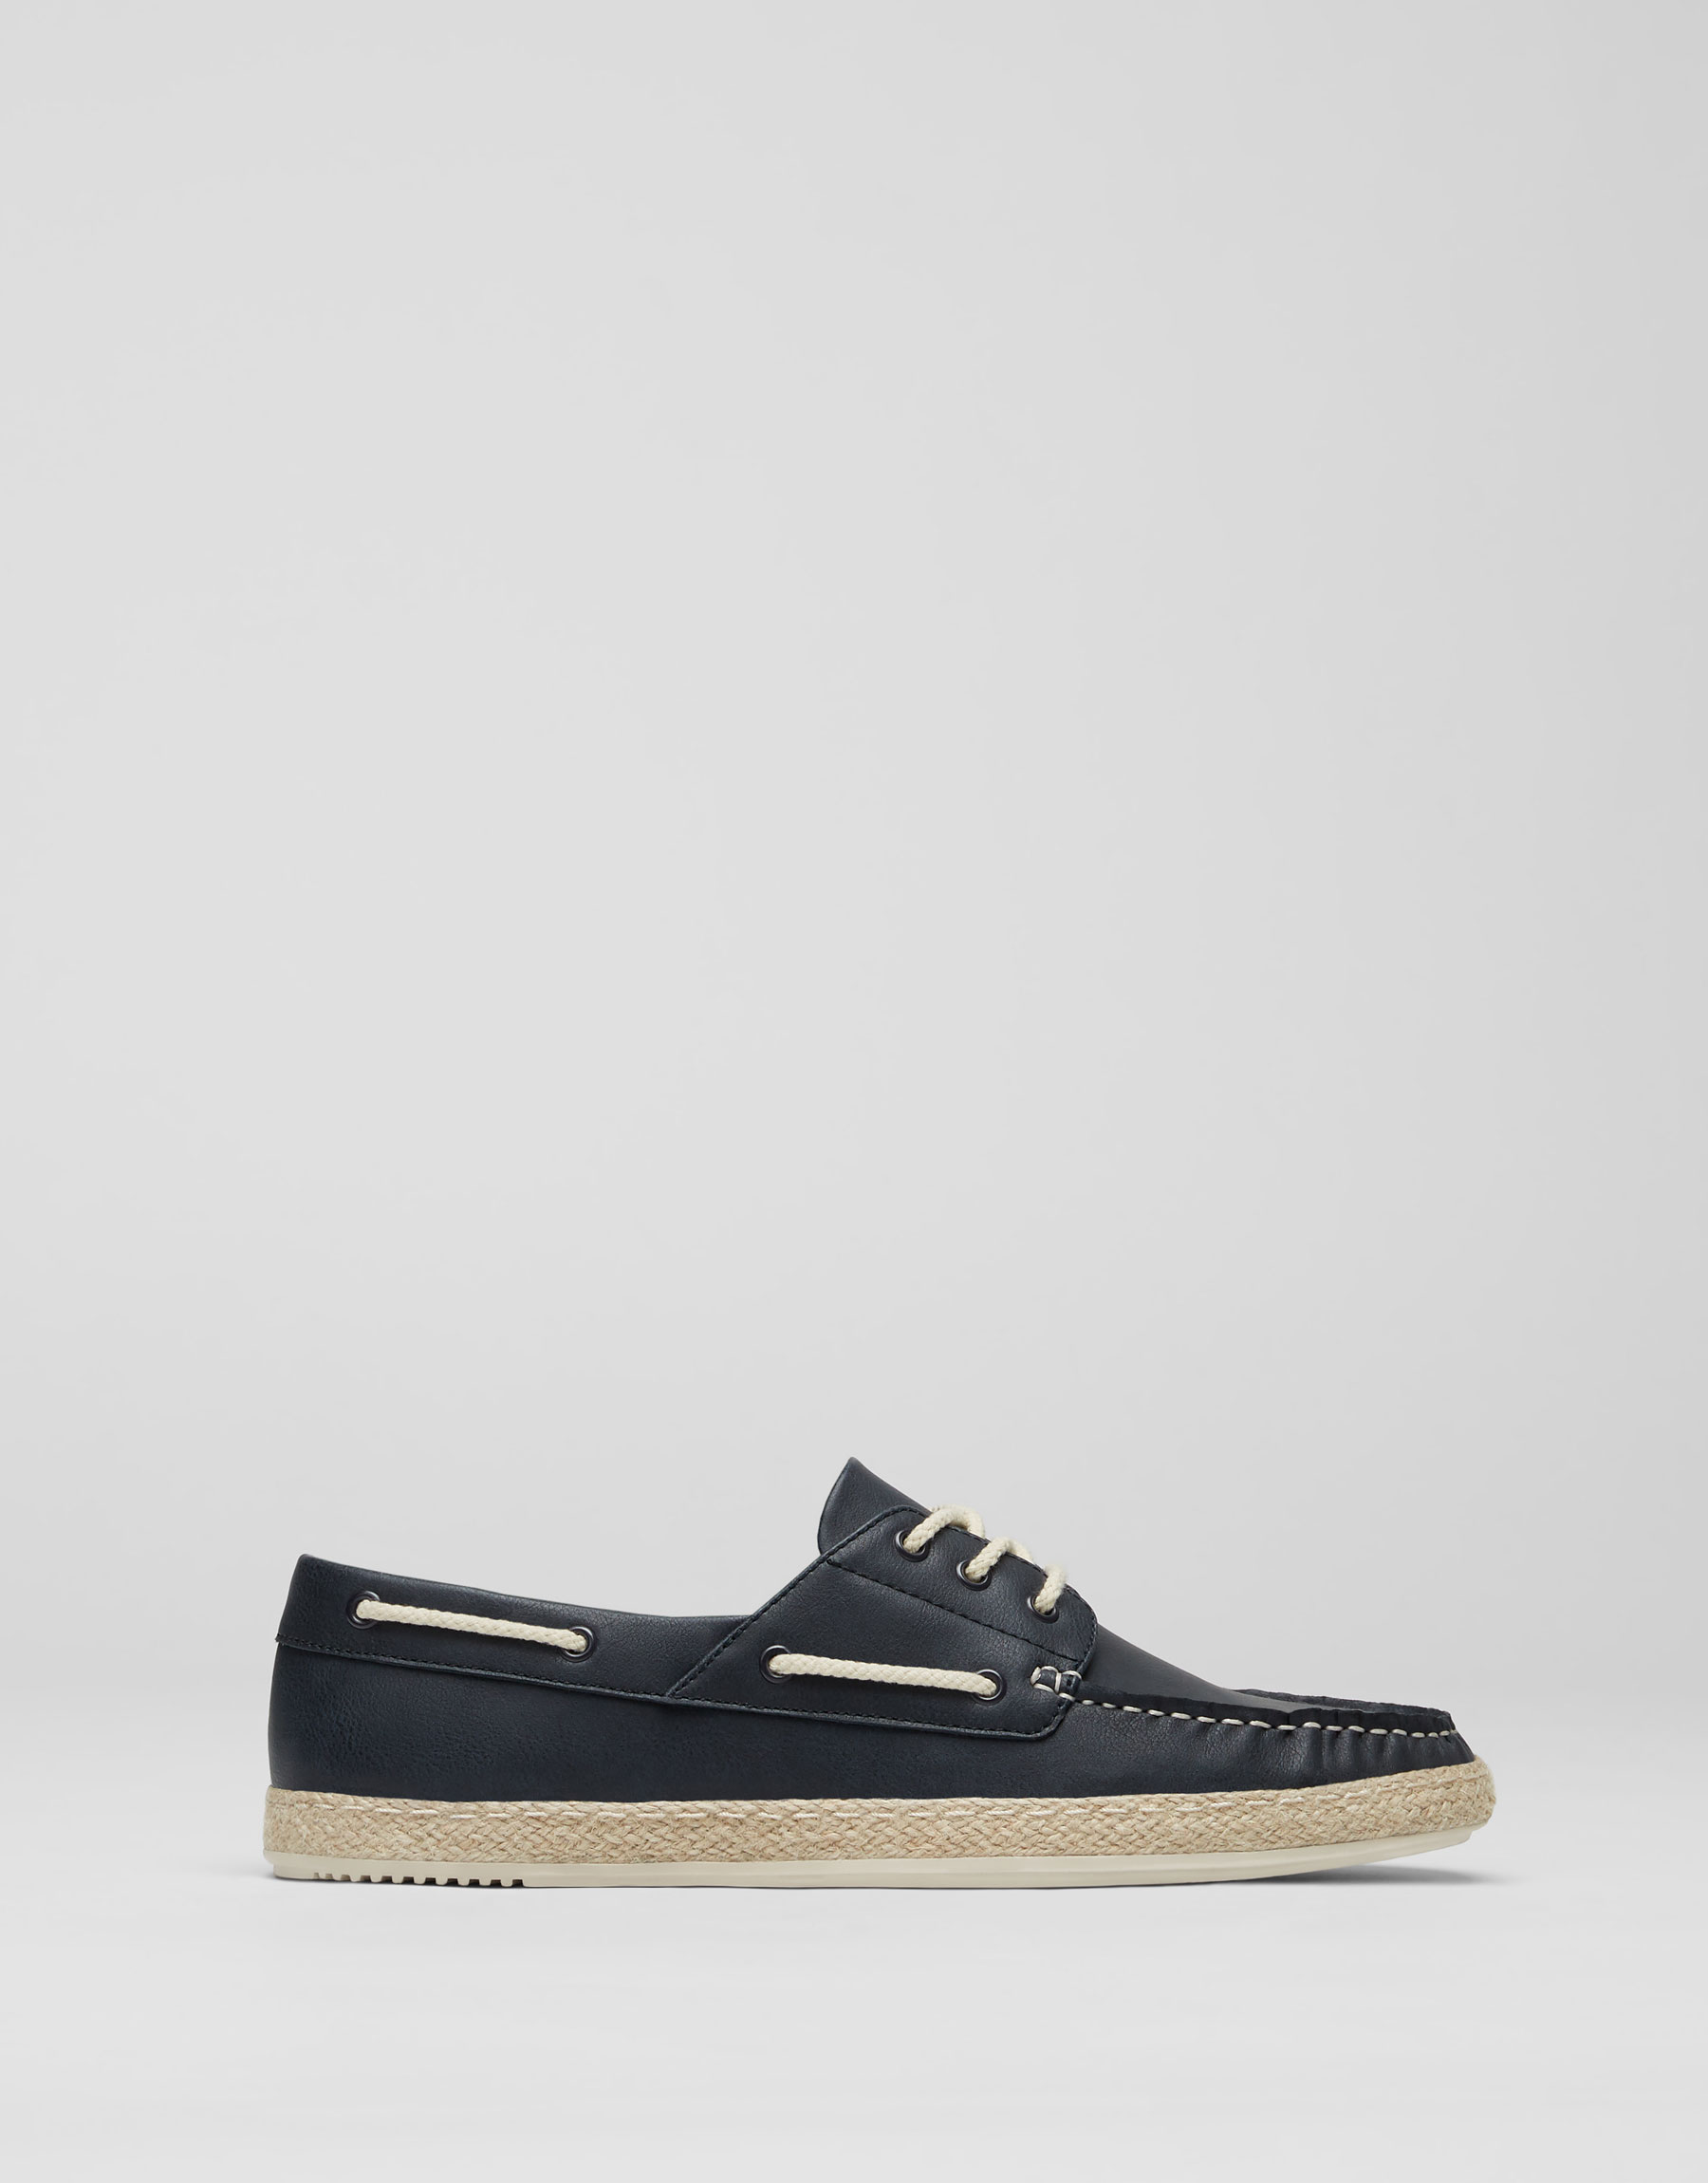 Blue jute docksiders